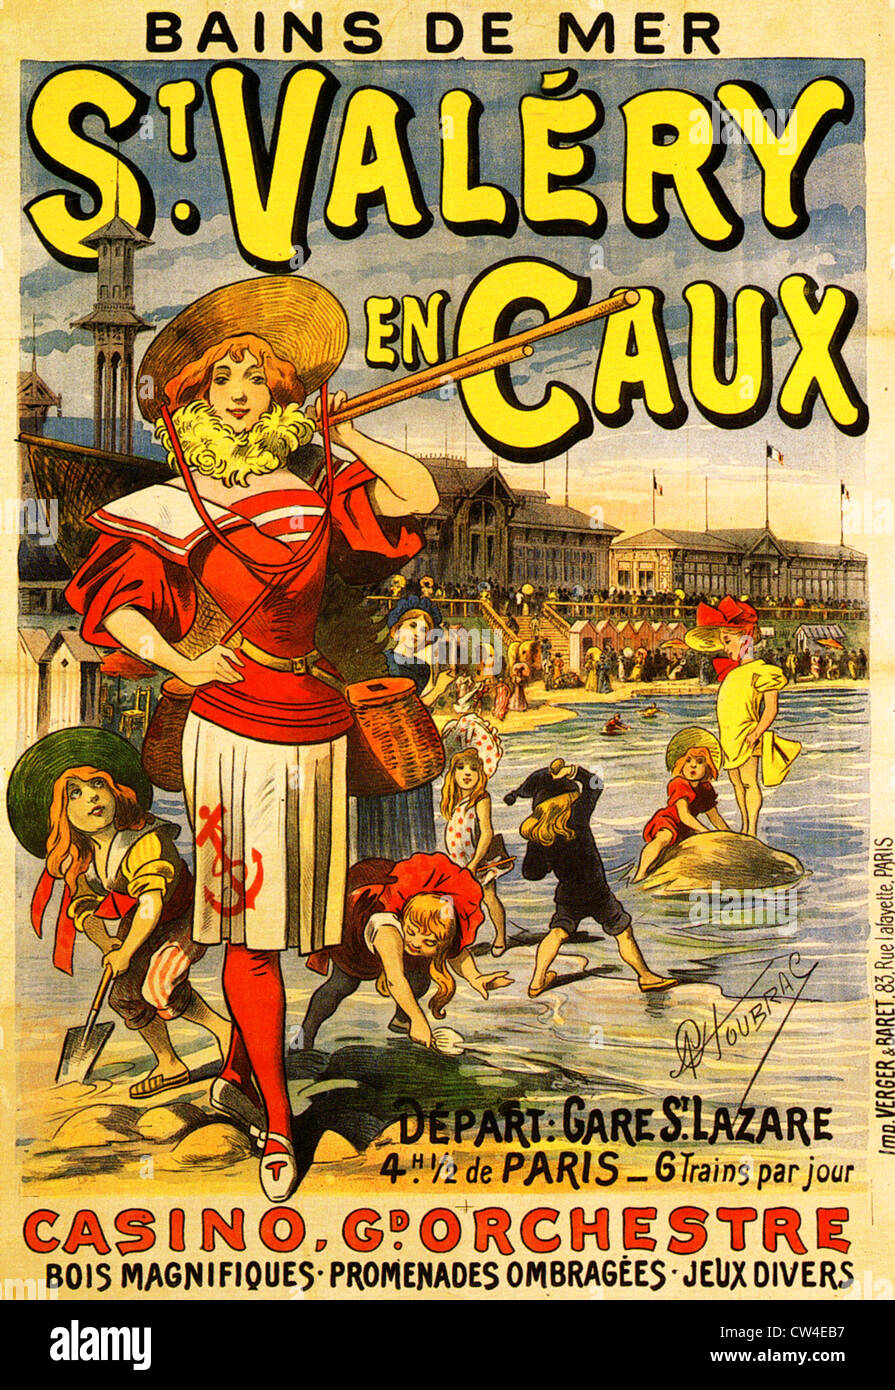 FRENCH BATHING RESORT at St. Valery en Caux on a poster about 1895 - Stock Image